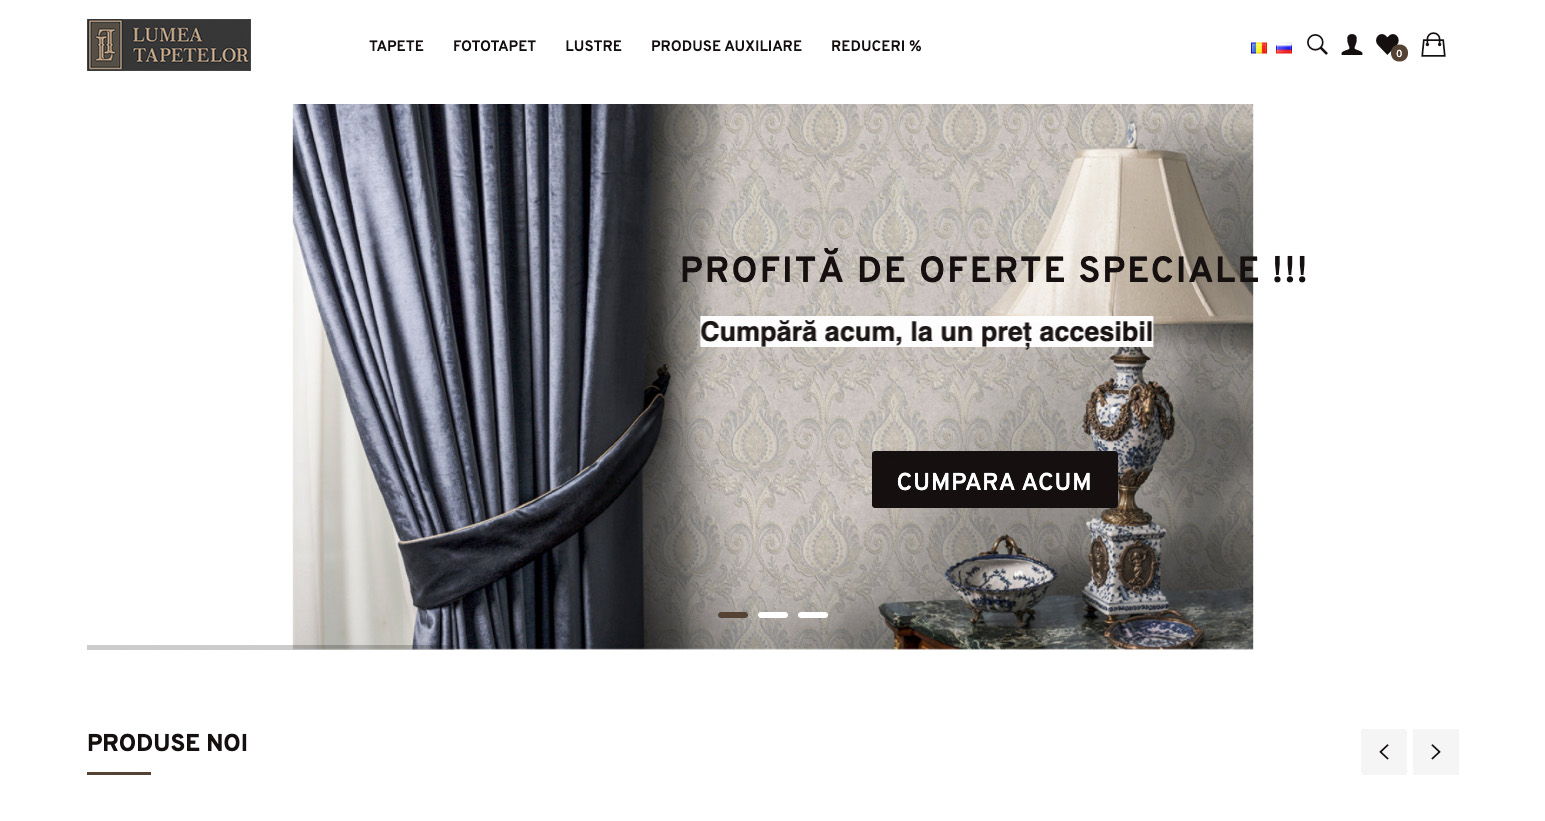 Redesign of the online store Lumea Tapetelor 2